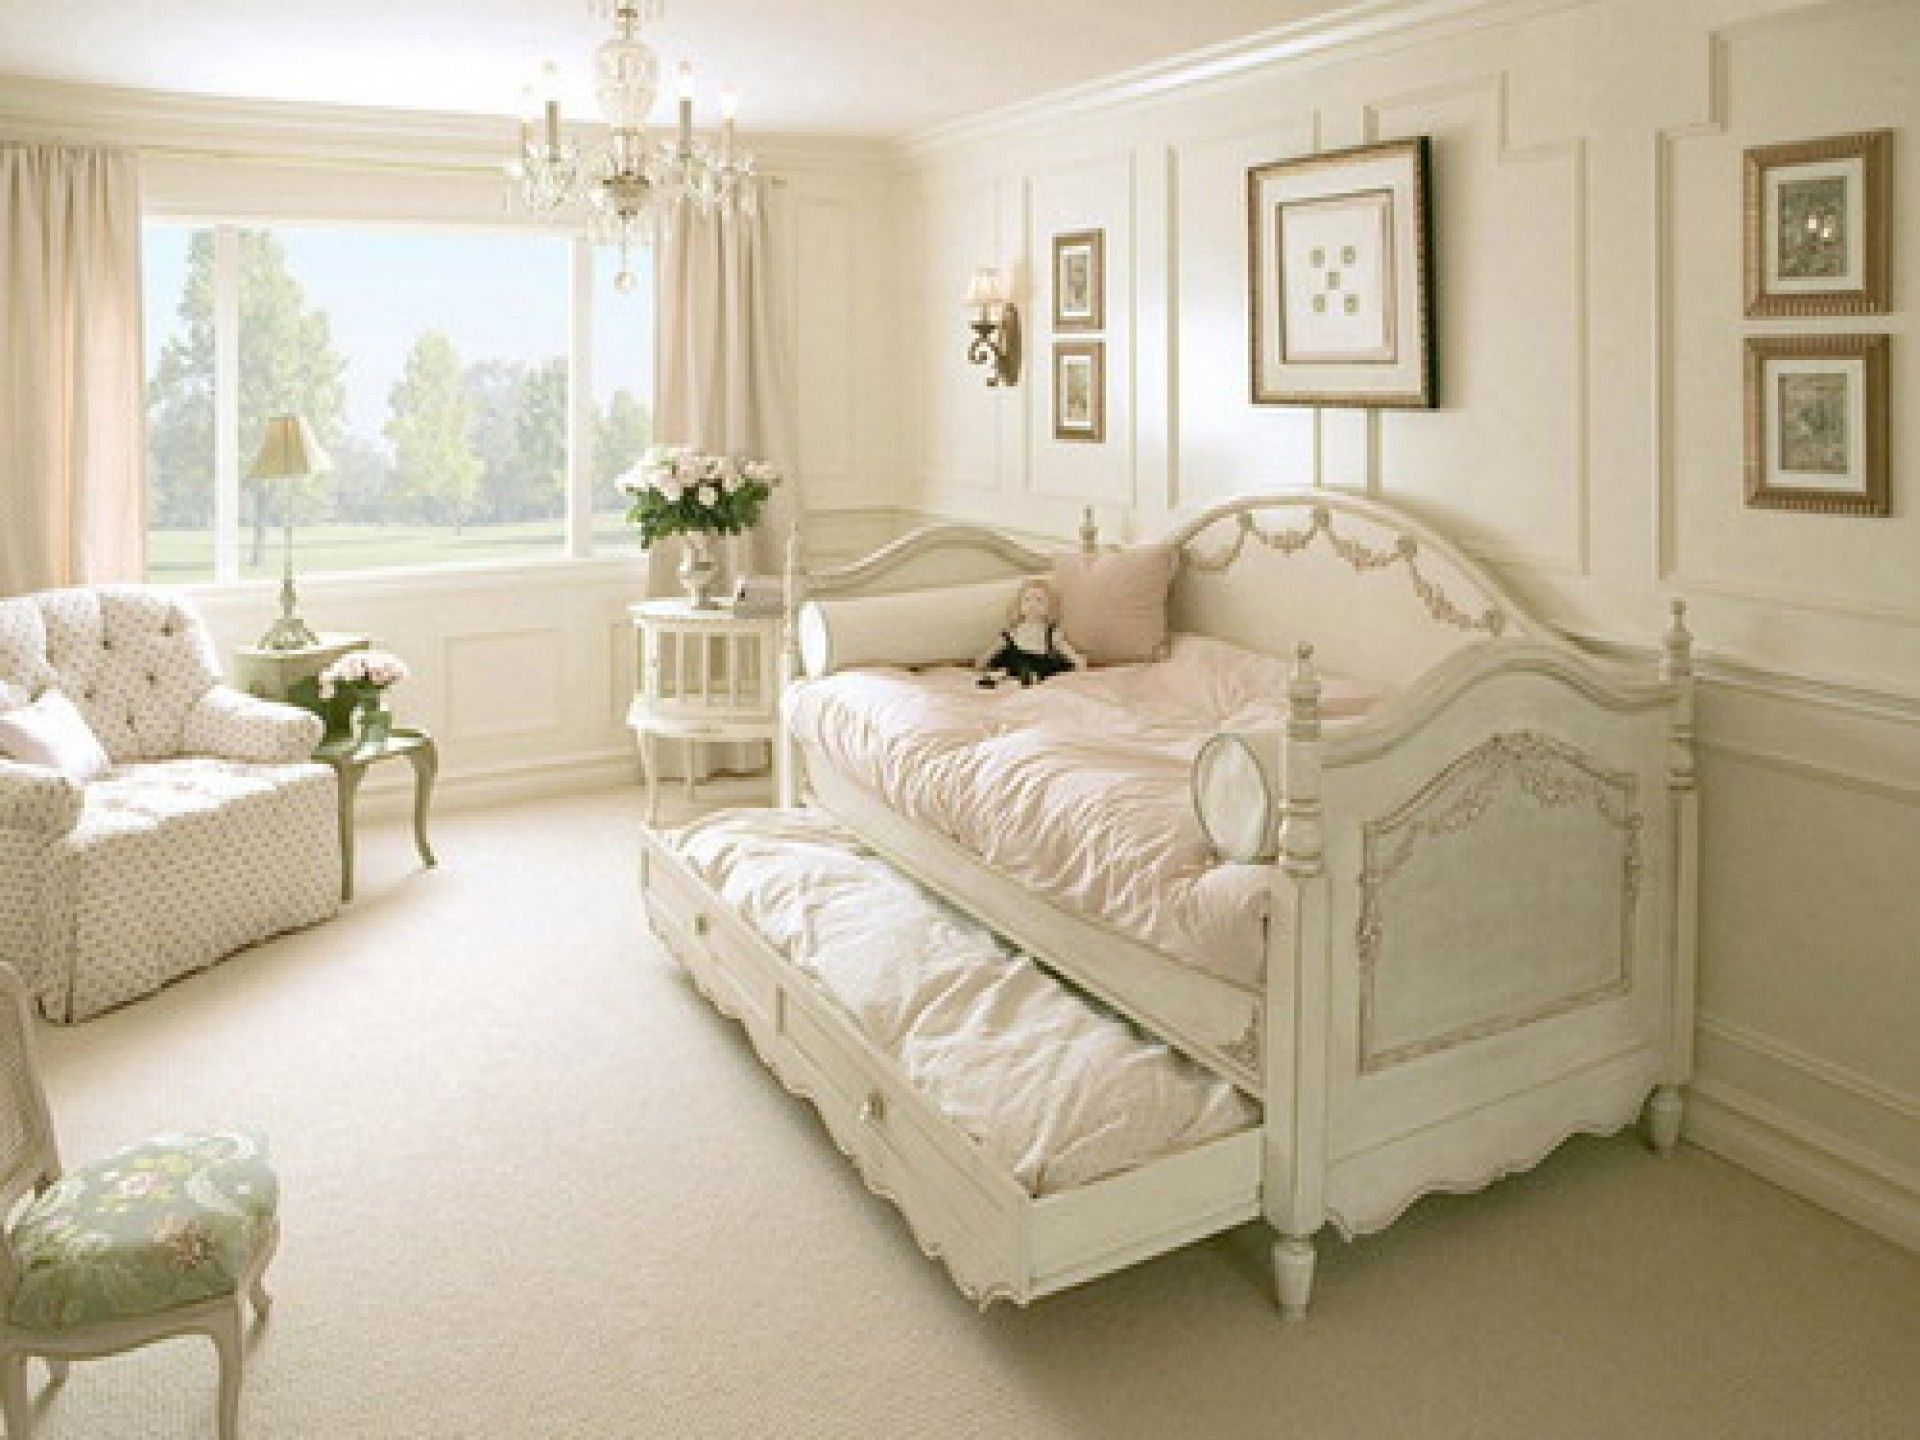 Adorable Girls Day Bed Bedding Hemnes Daybed Room Ideas Daybed ...